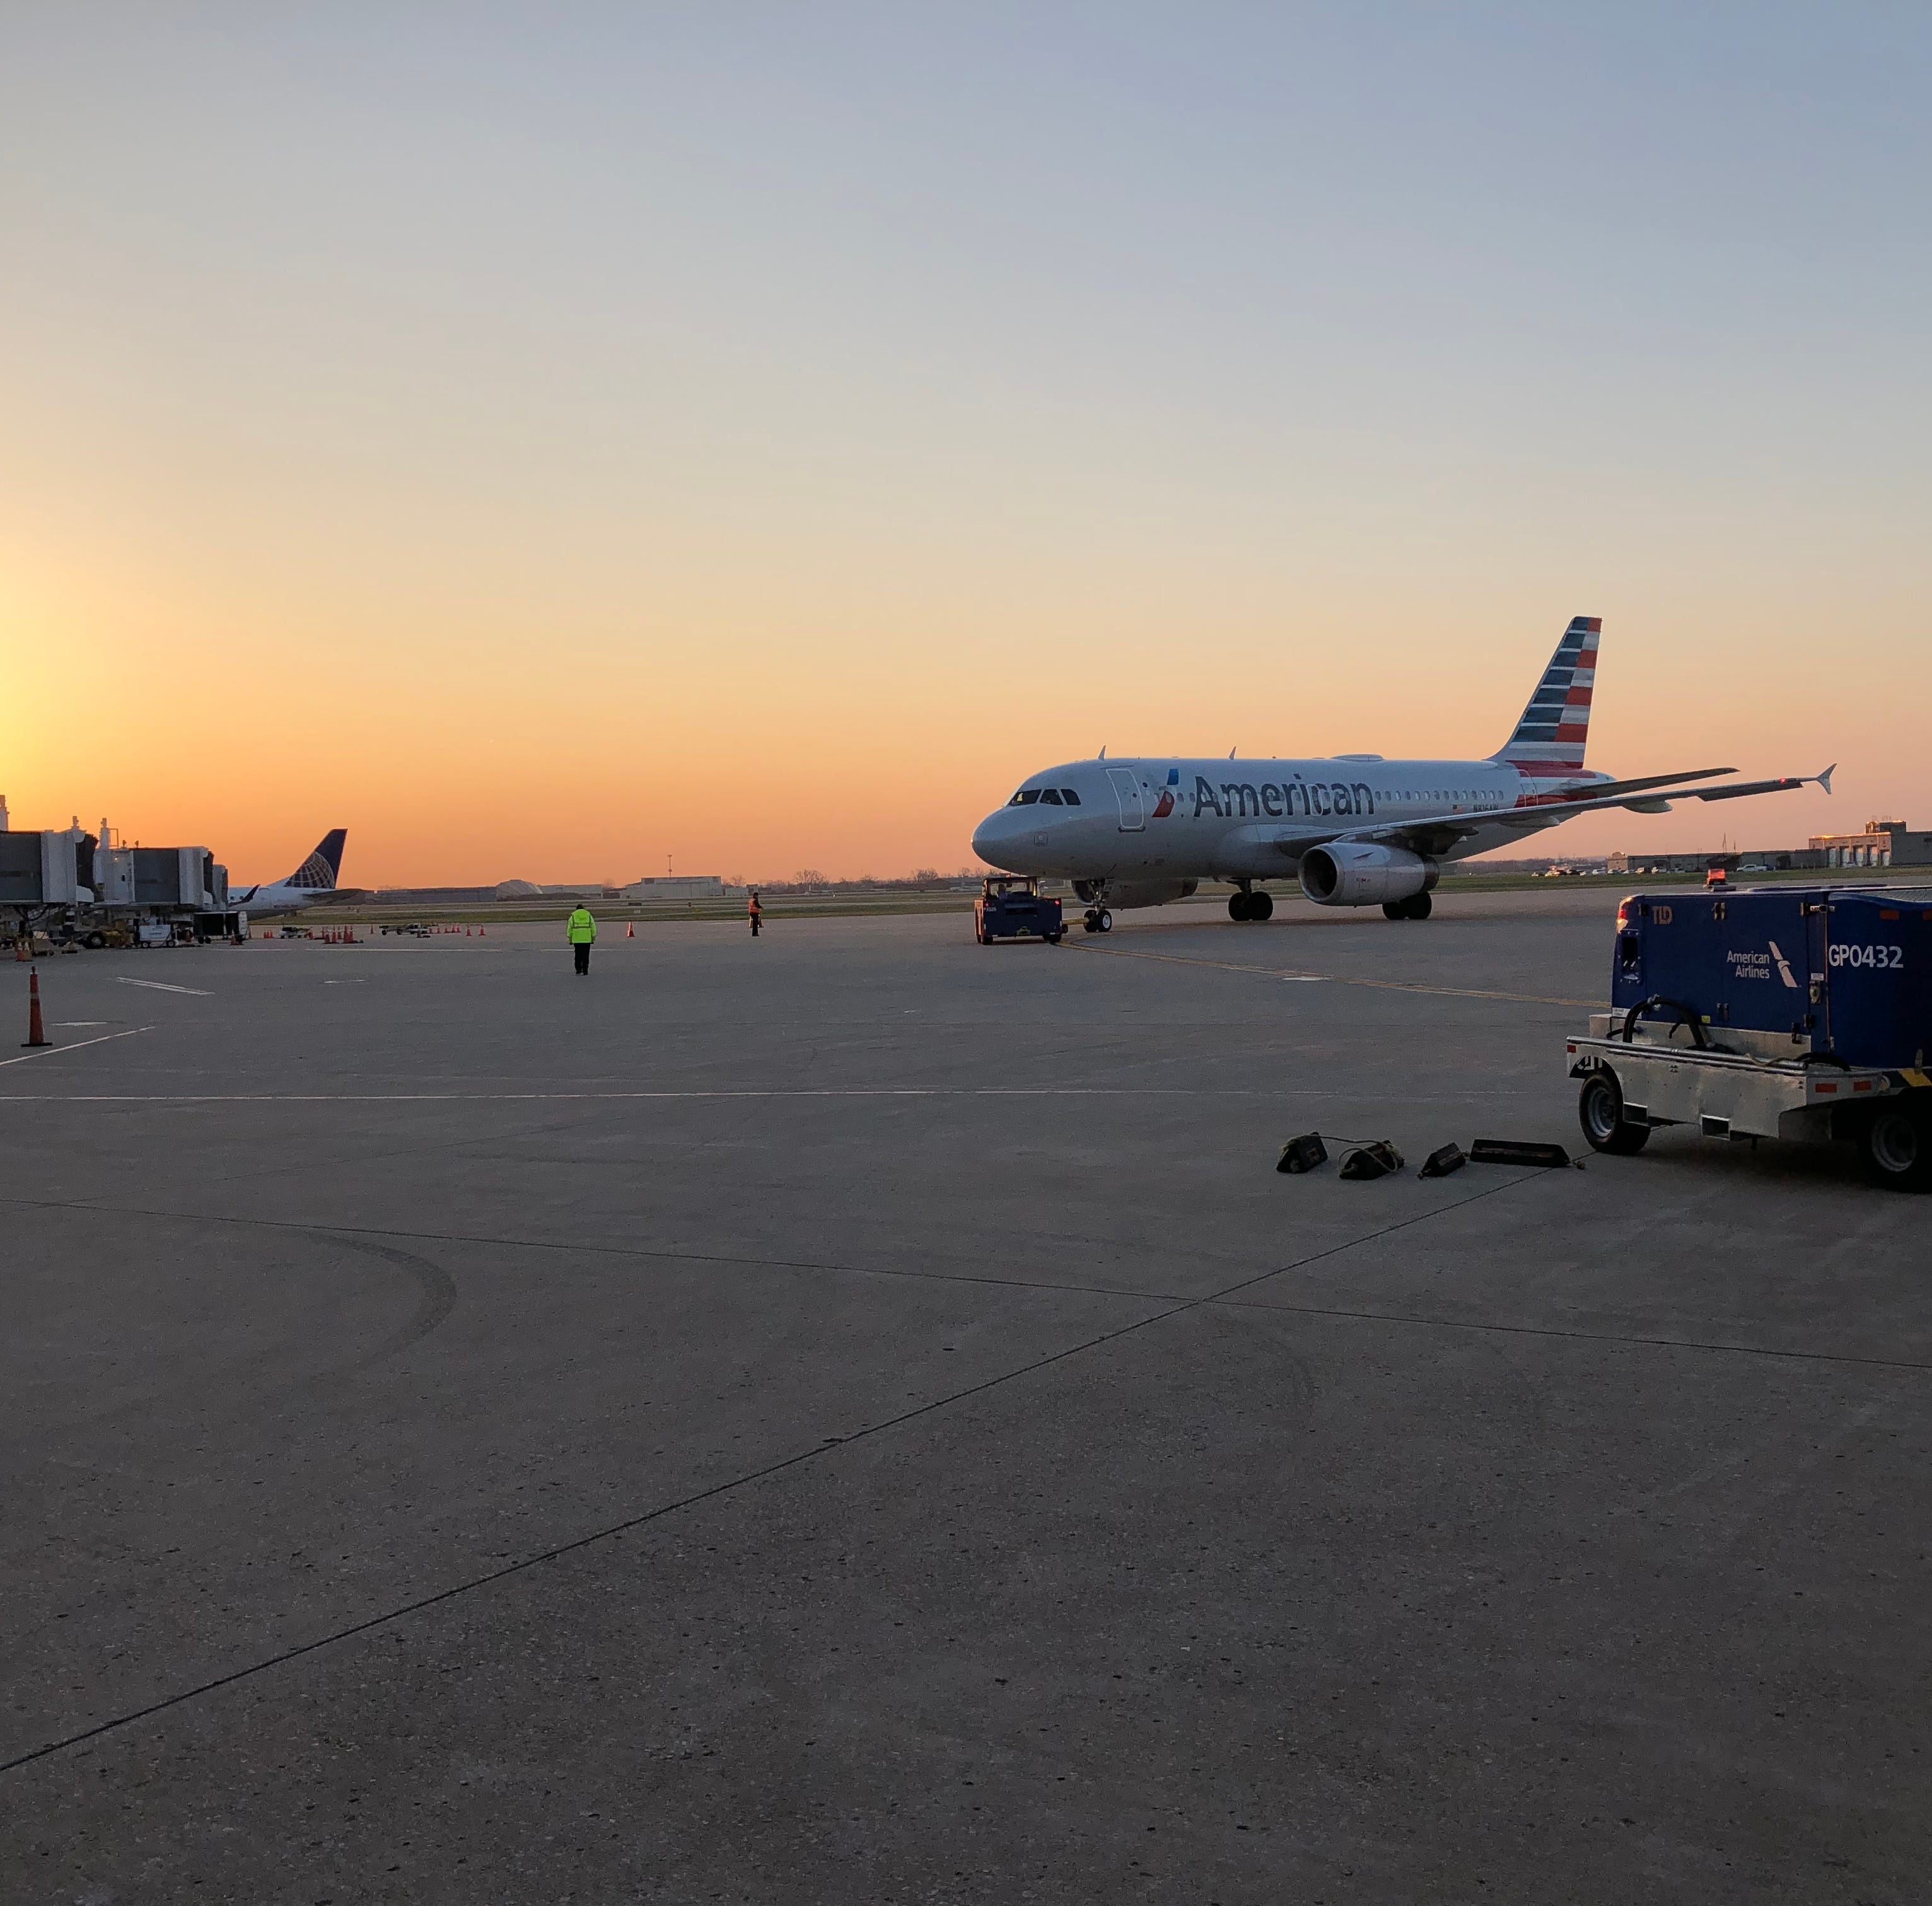 You can now take a daily direct flight from Louisville to Los Angeles